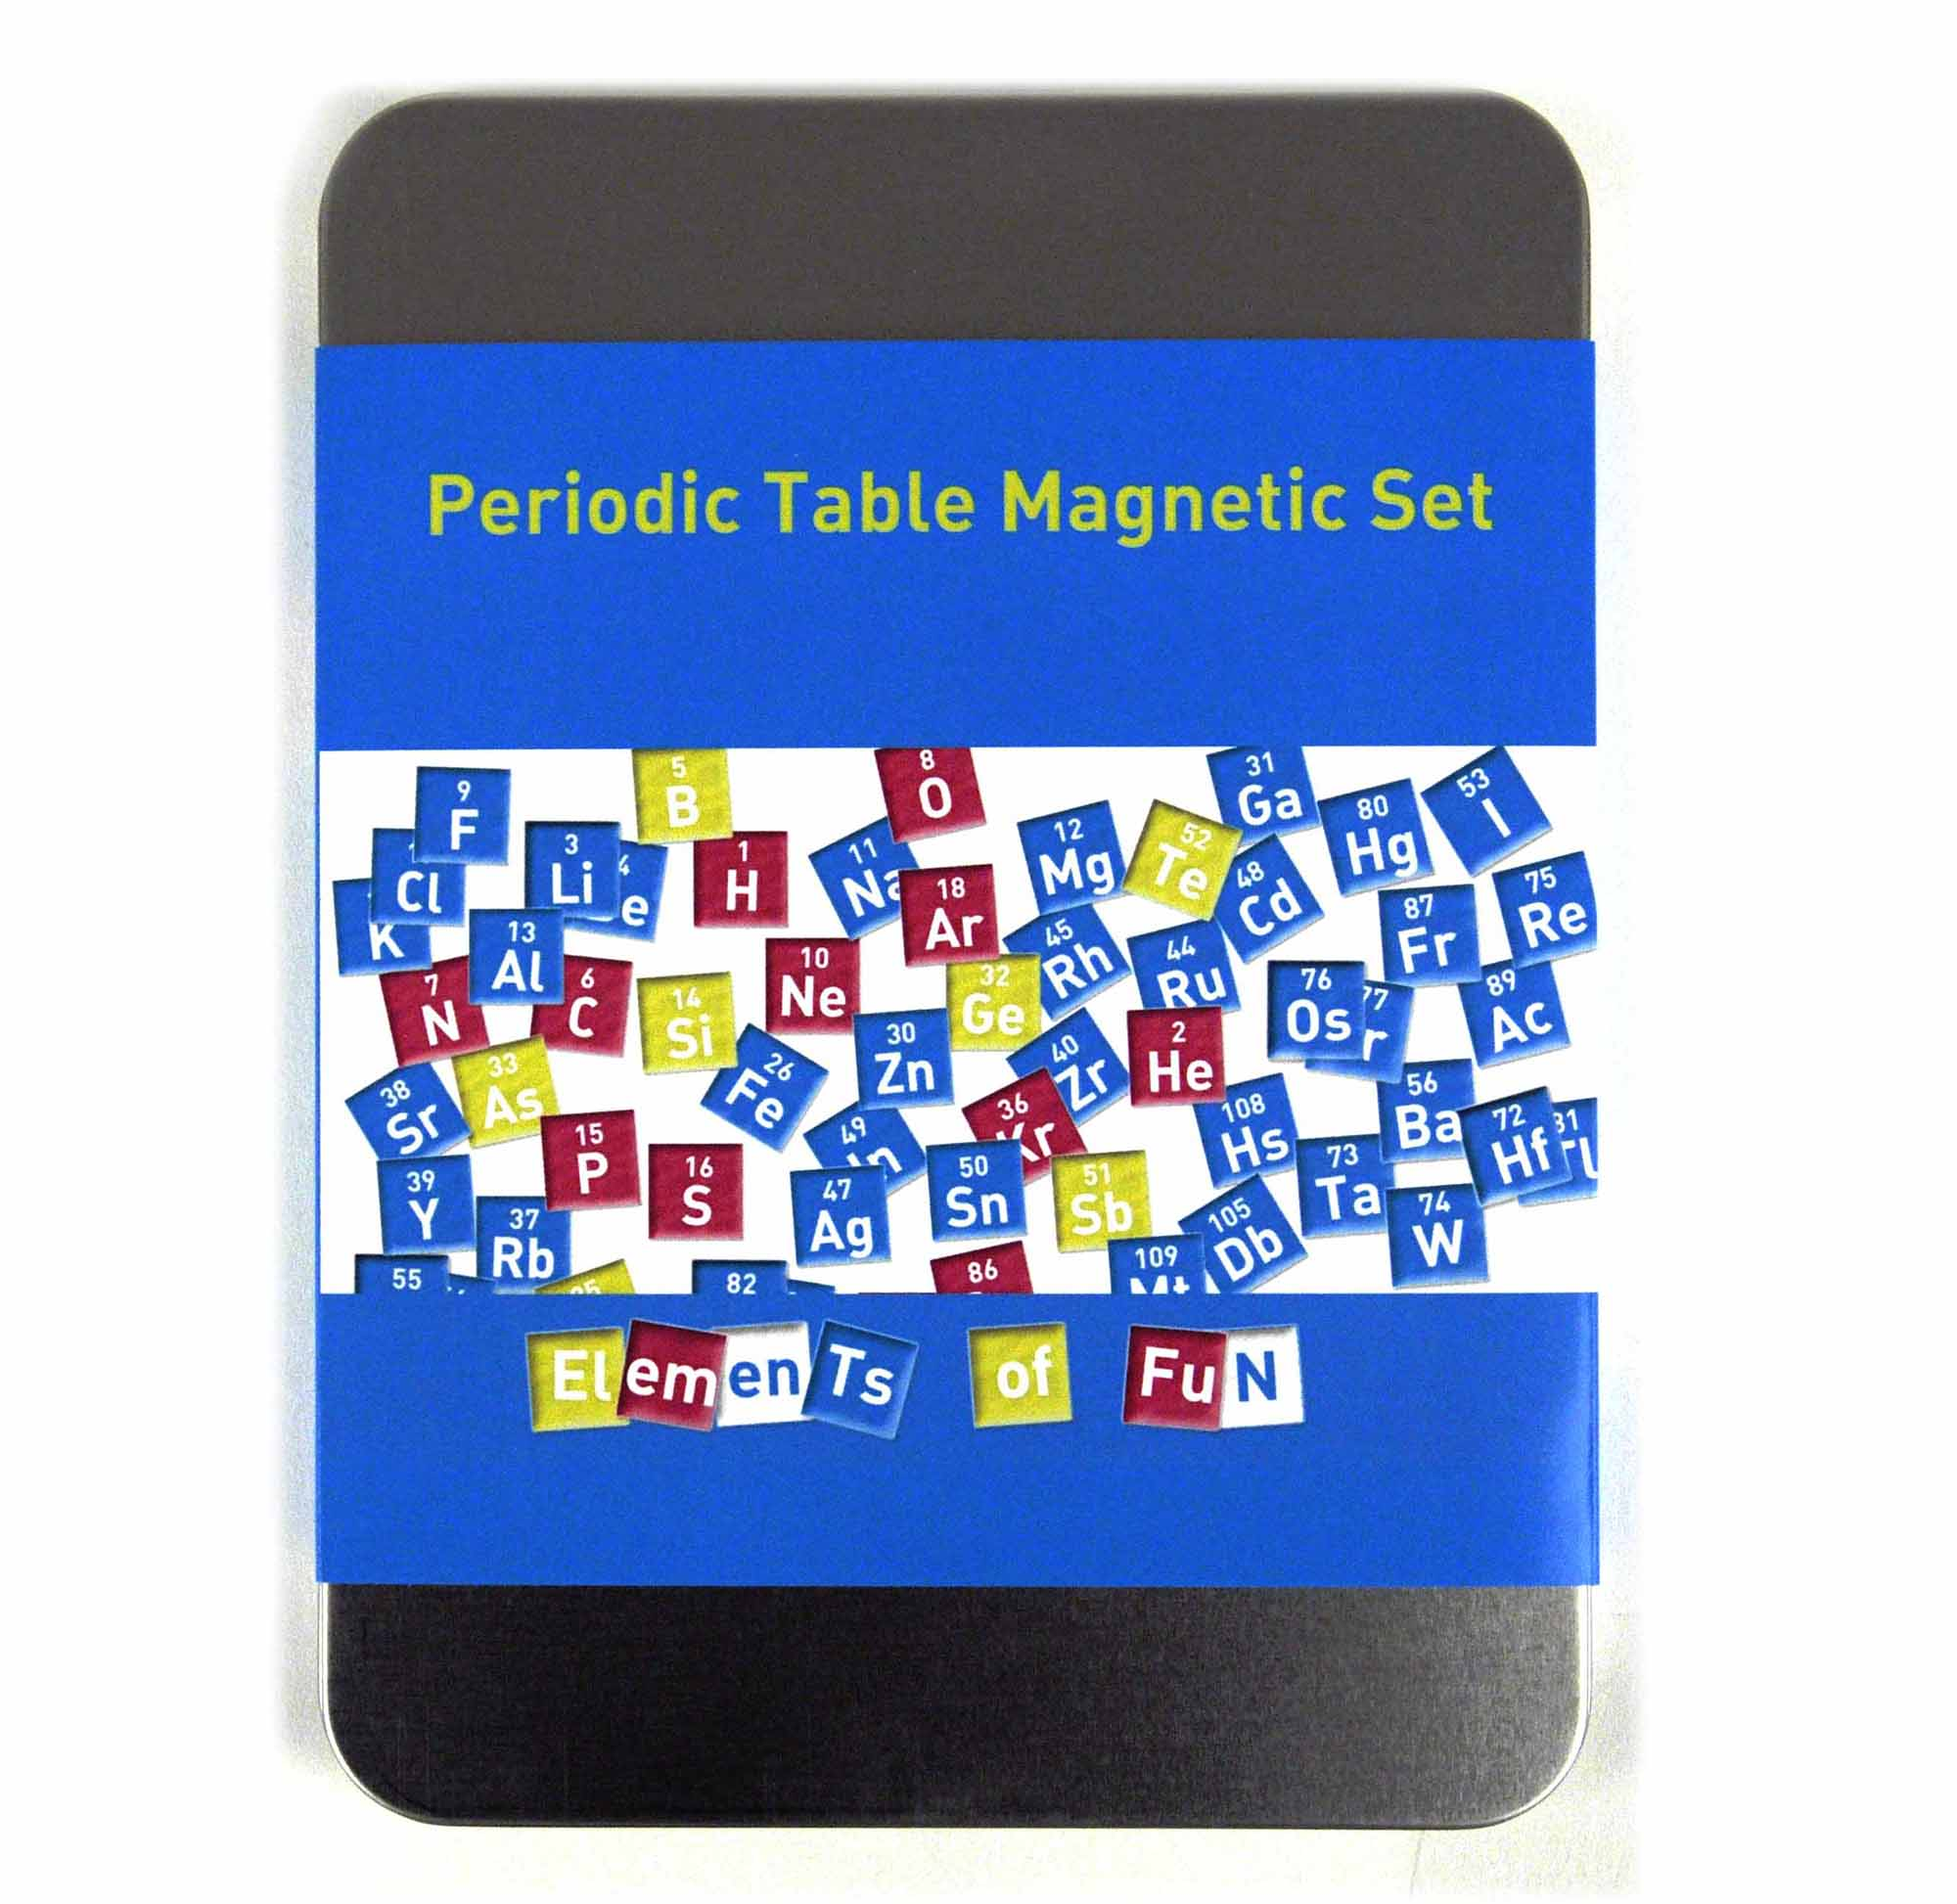 Periodic table magnetic set fridge magnets for chemists pink periodic table magnetic set fridge magnets for chemists gamestrikefo Choice Image